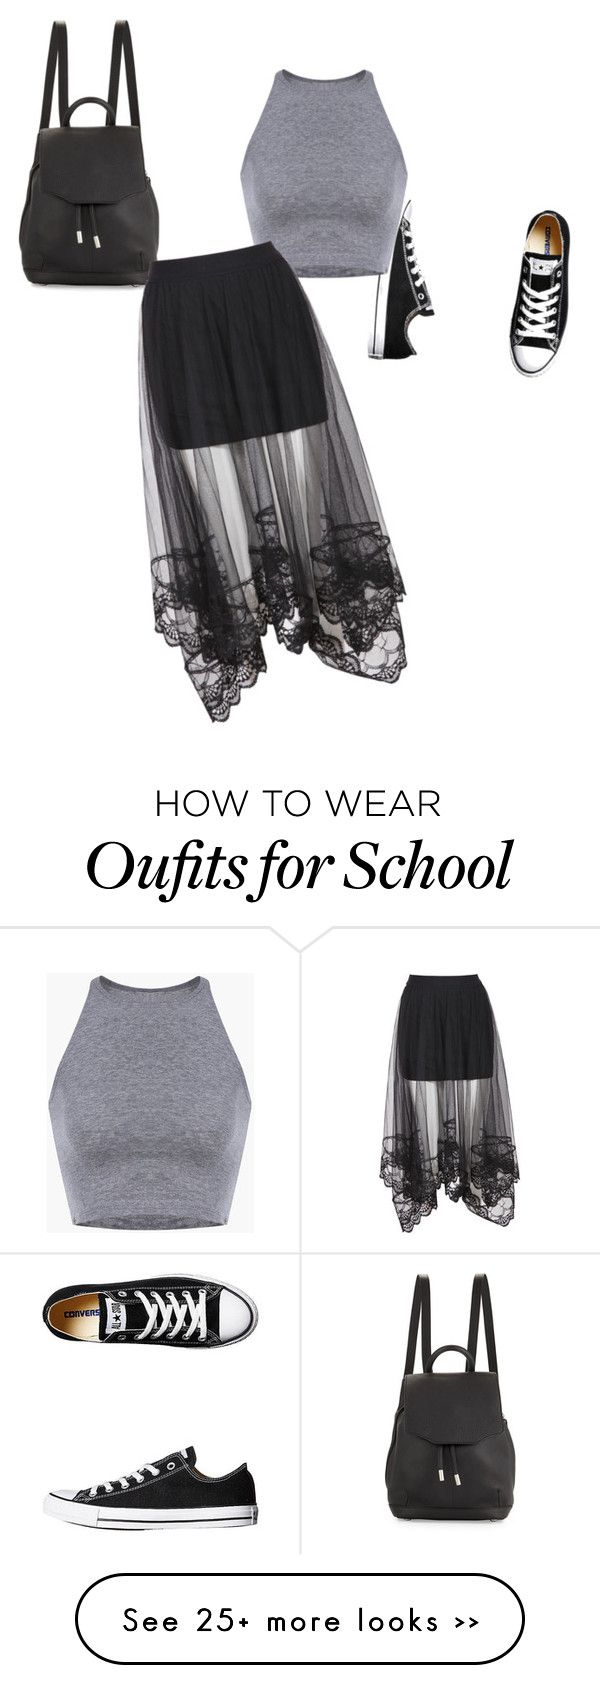 """School"" by lexabloom on Polyvore featuring Converse and rag & bone"